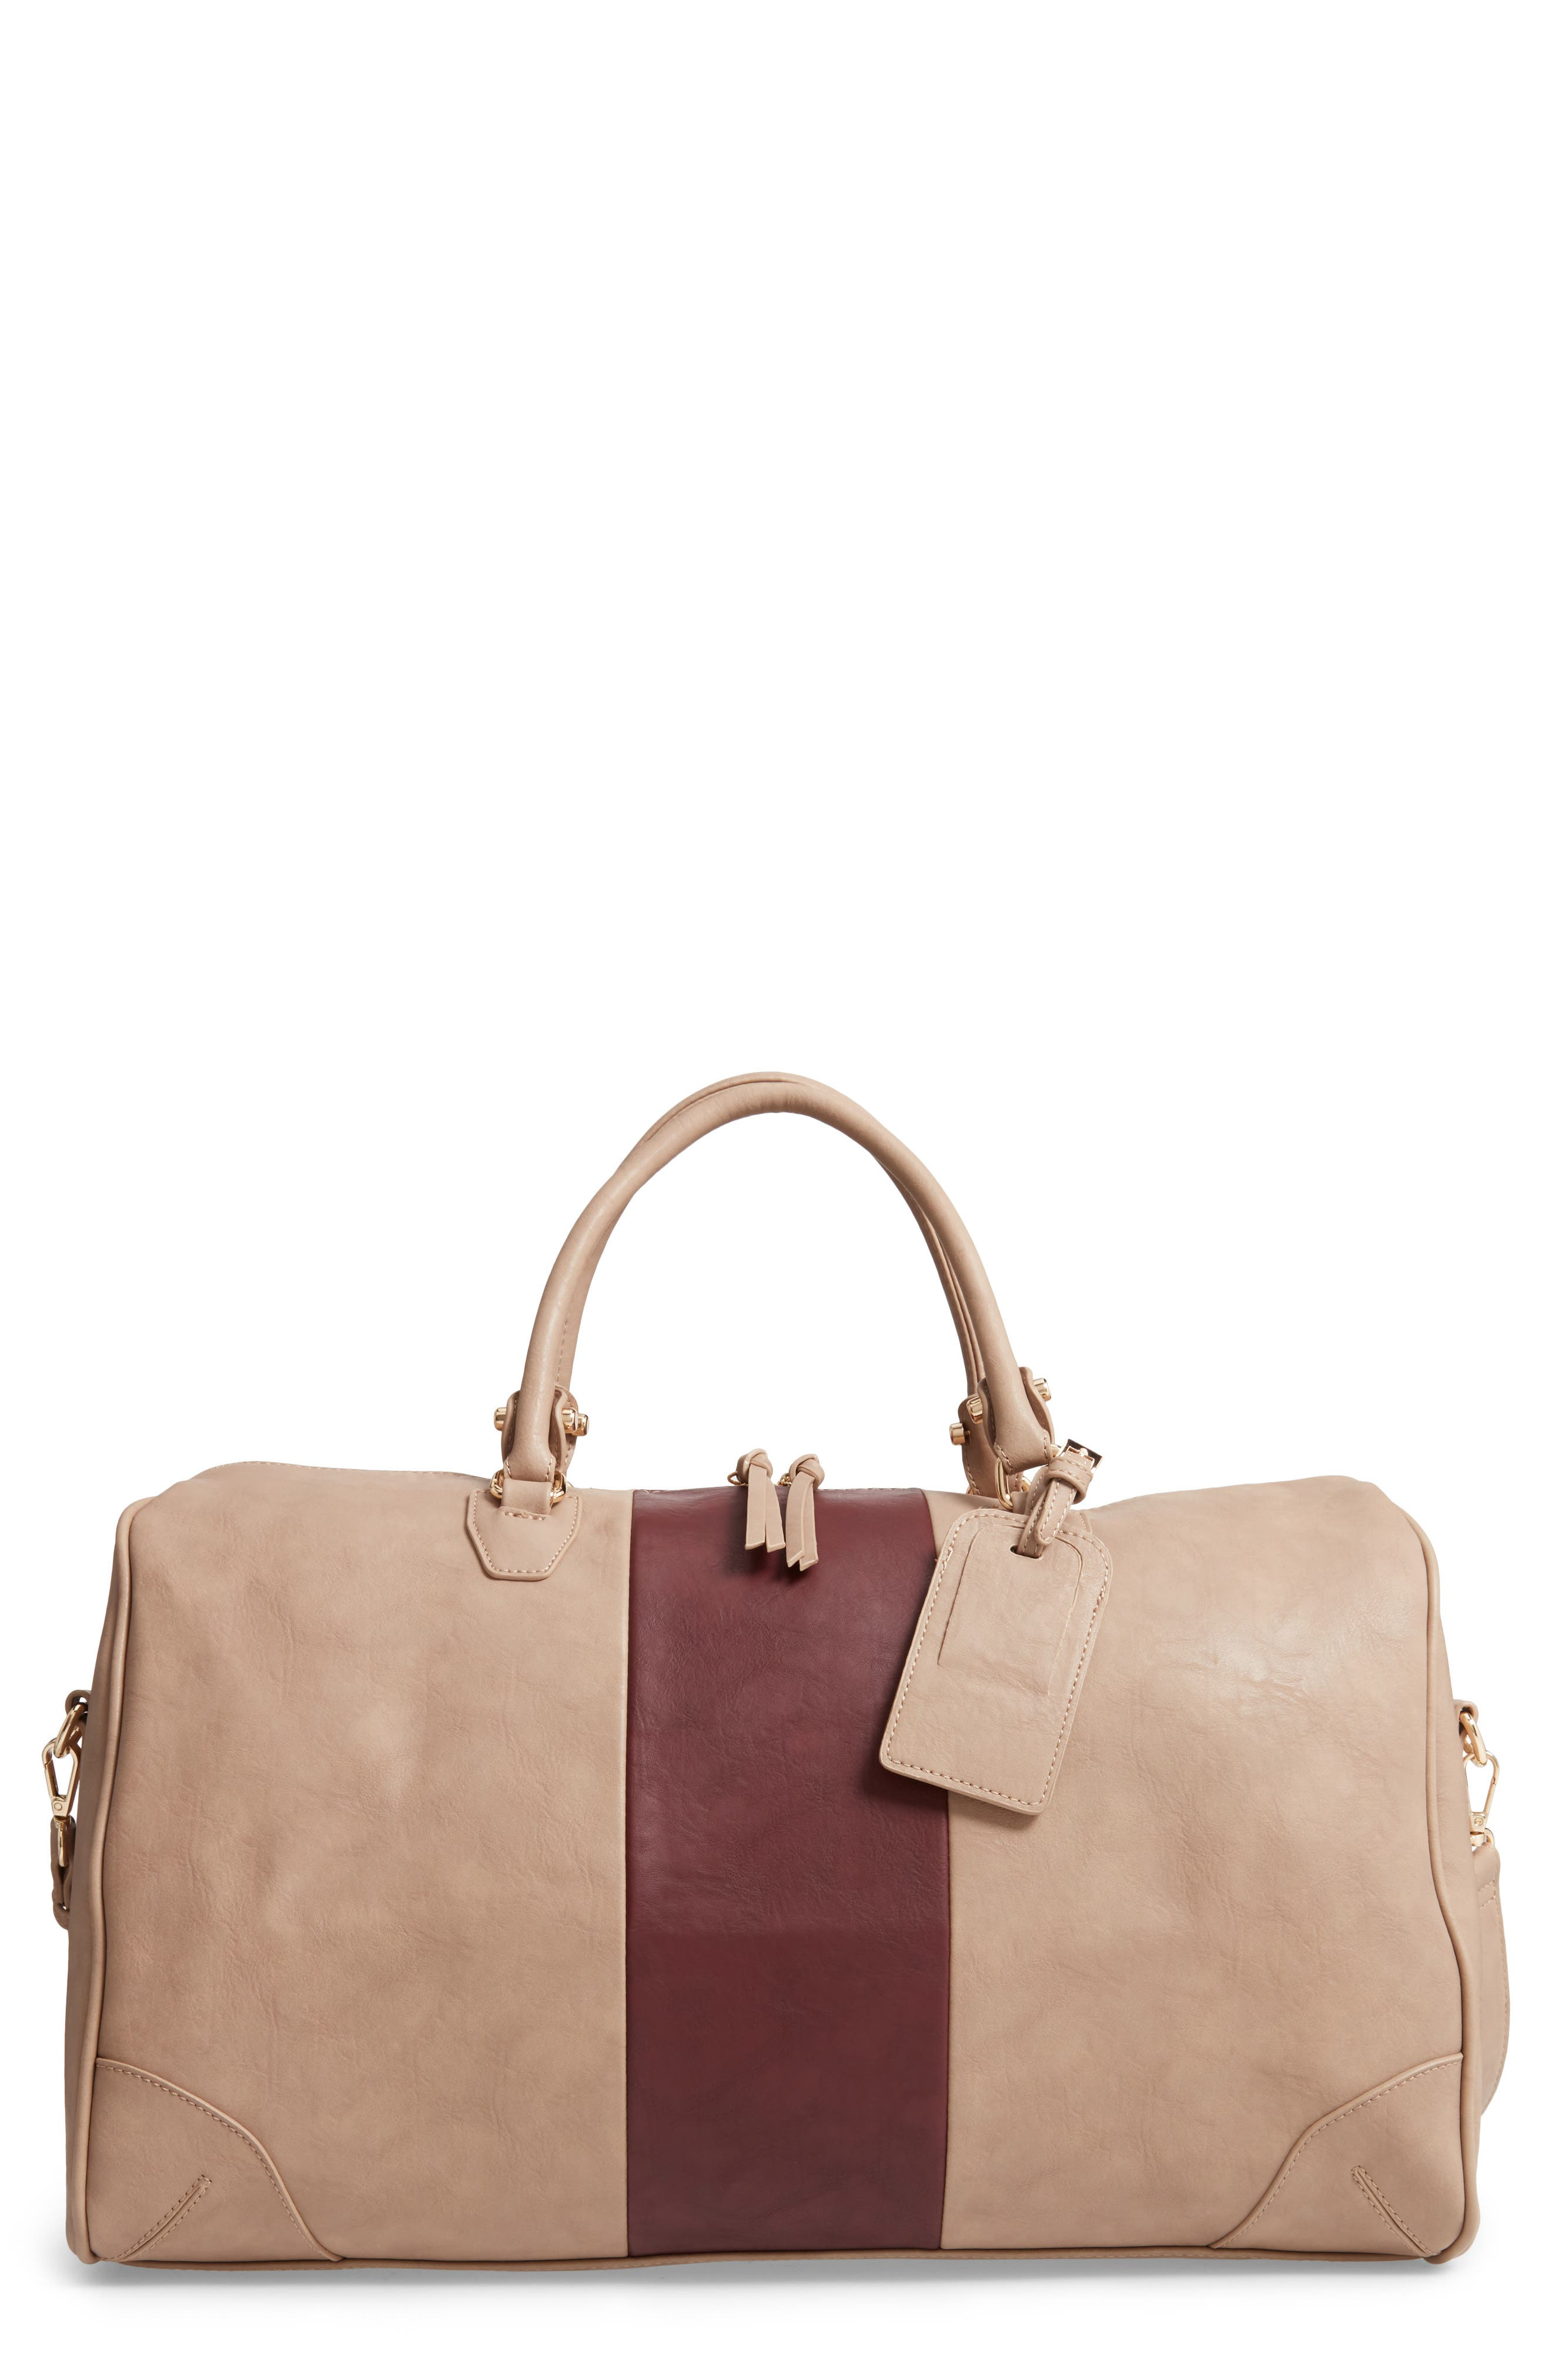 'Robin' Faux Leather Weekend Bag,                             Main thumbnail 1, color,                             TAUPE